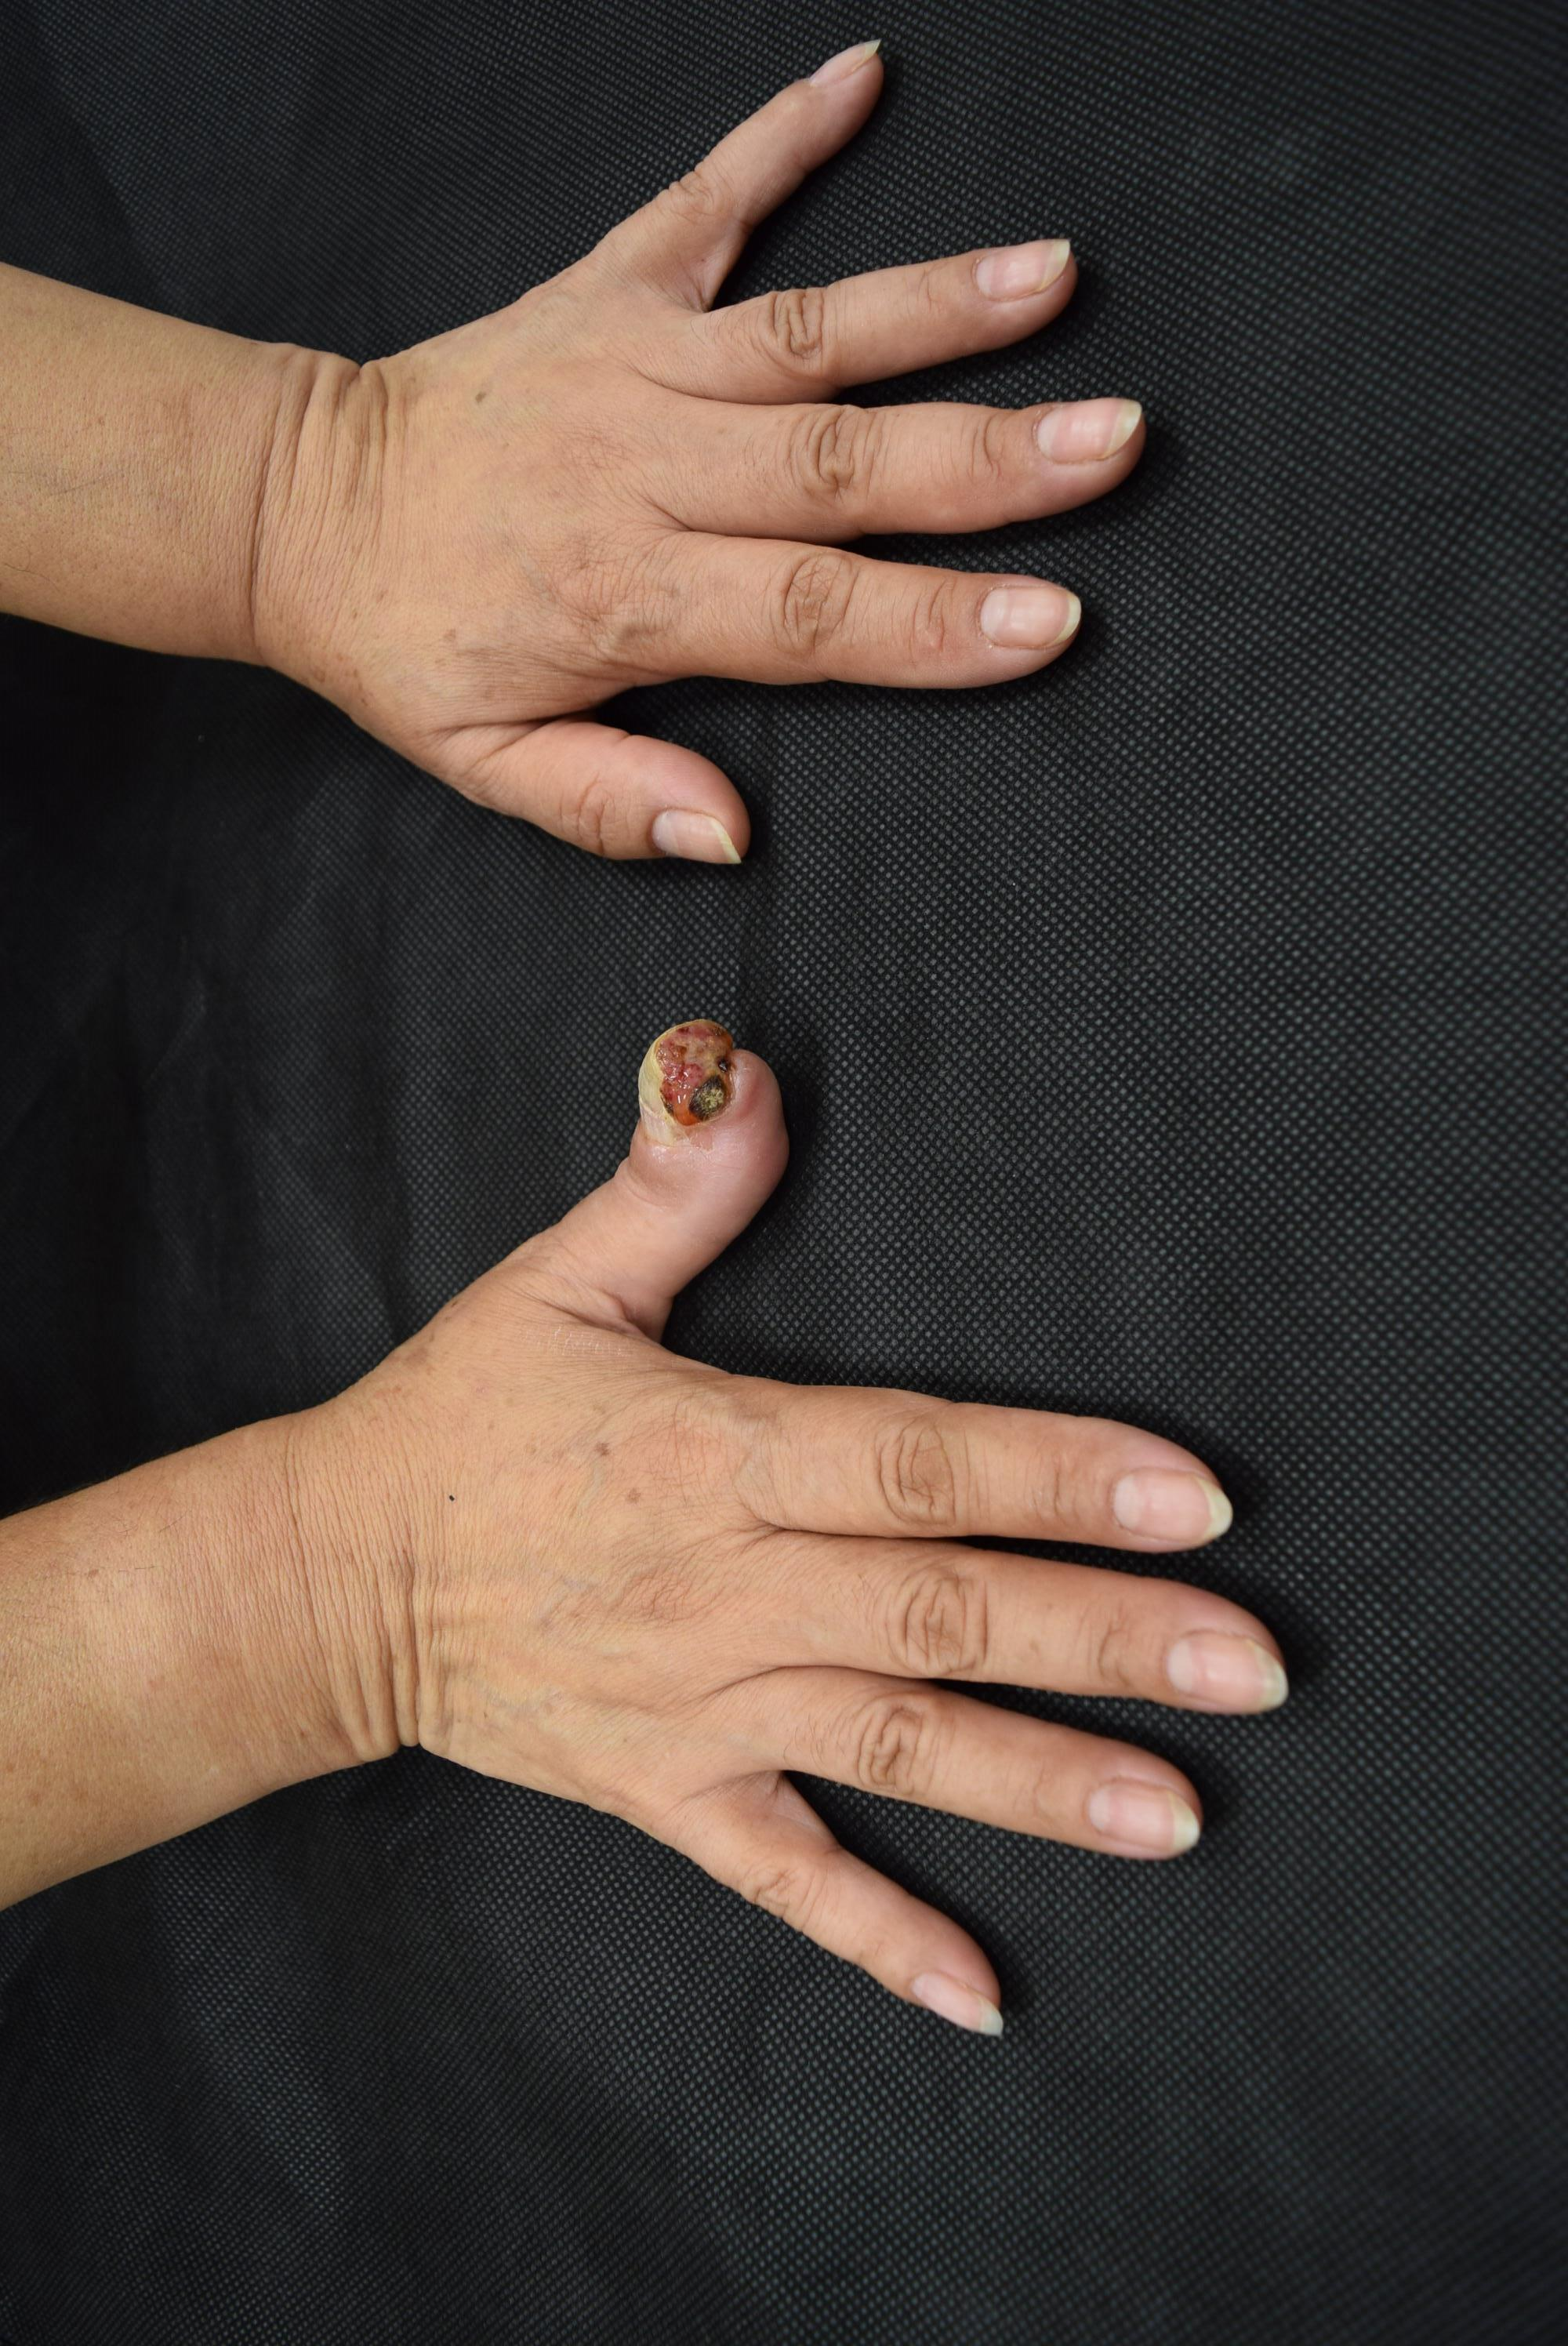 Subungual squamous cell carcinoma in a Hispanic person